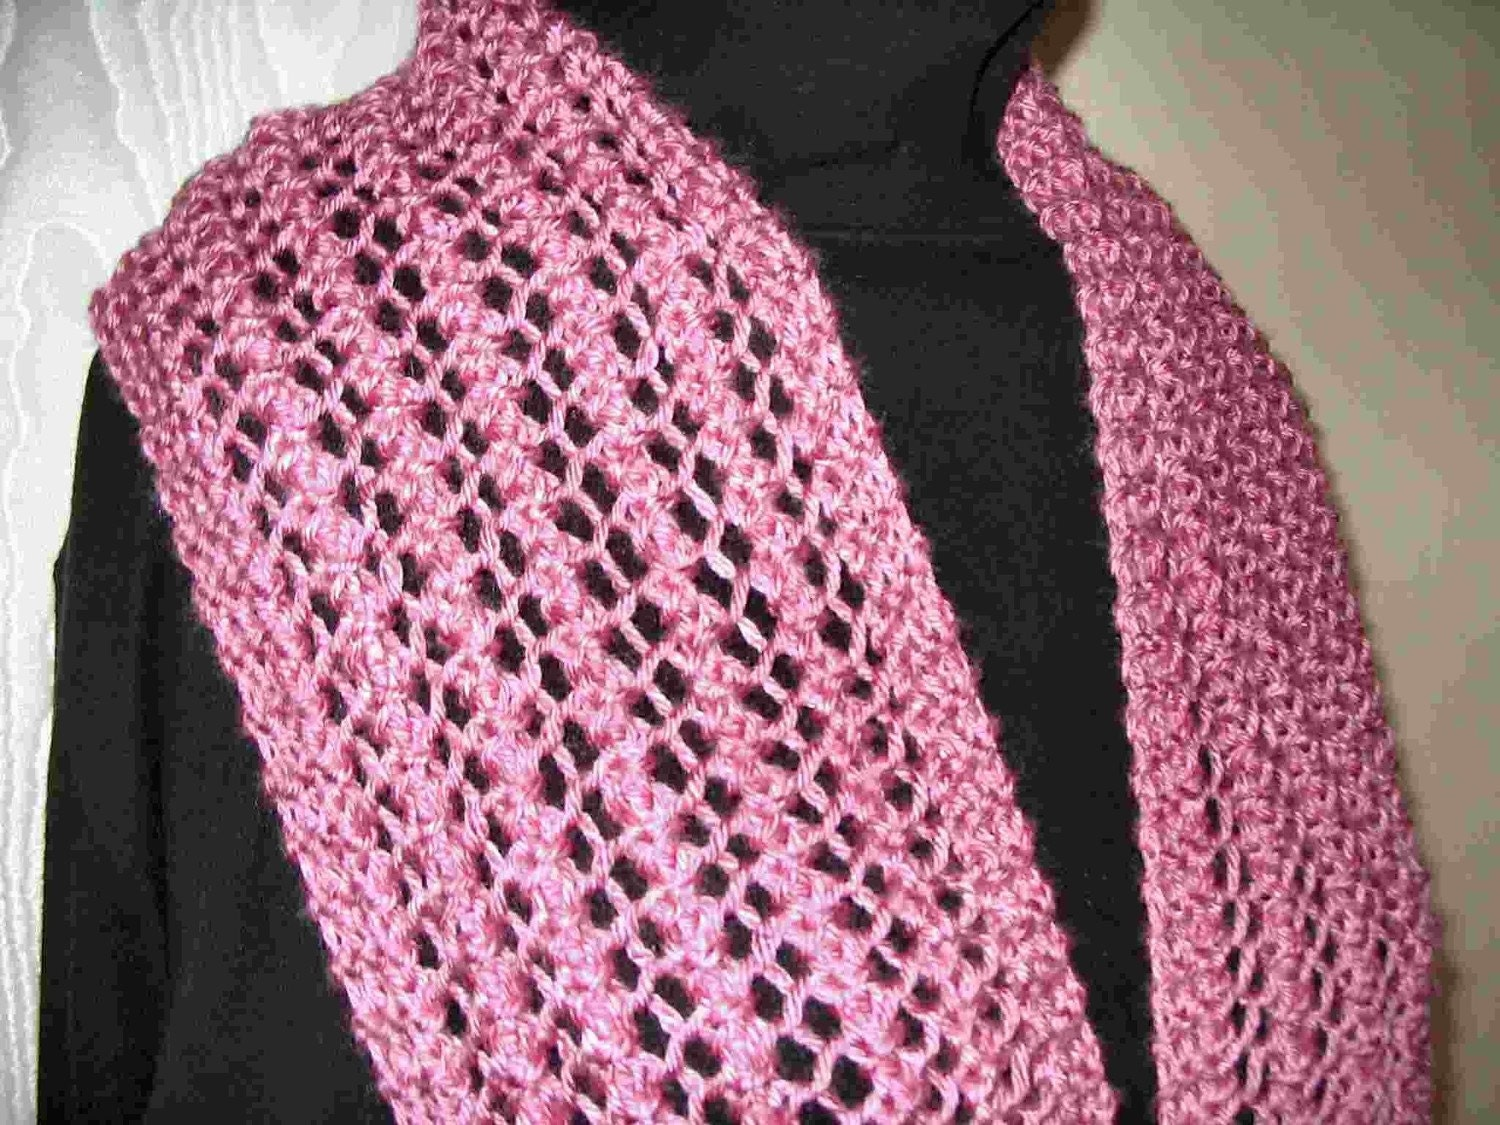 Free Knit Lace Pattern : EASY LACE KNIT PATTERNS   Free Patterns